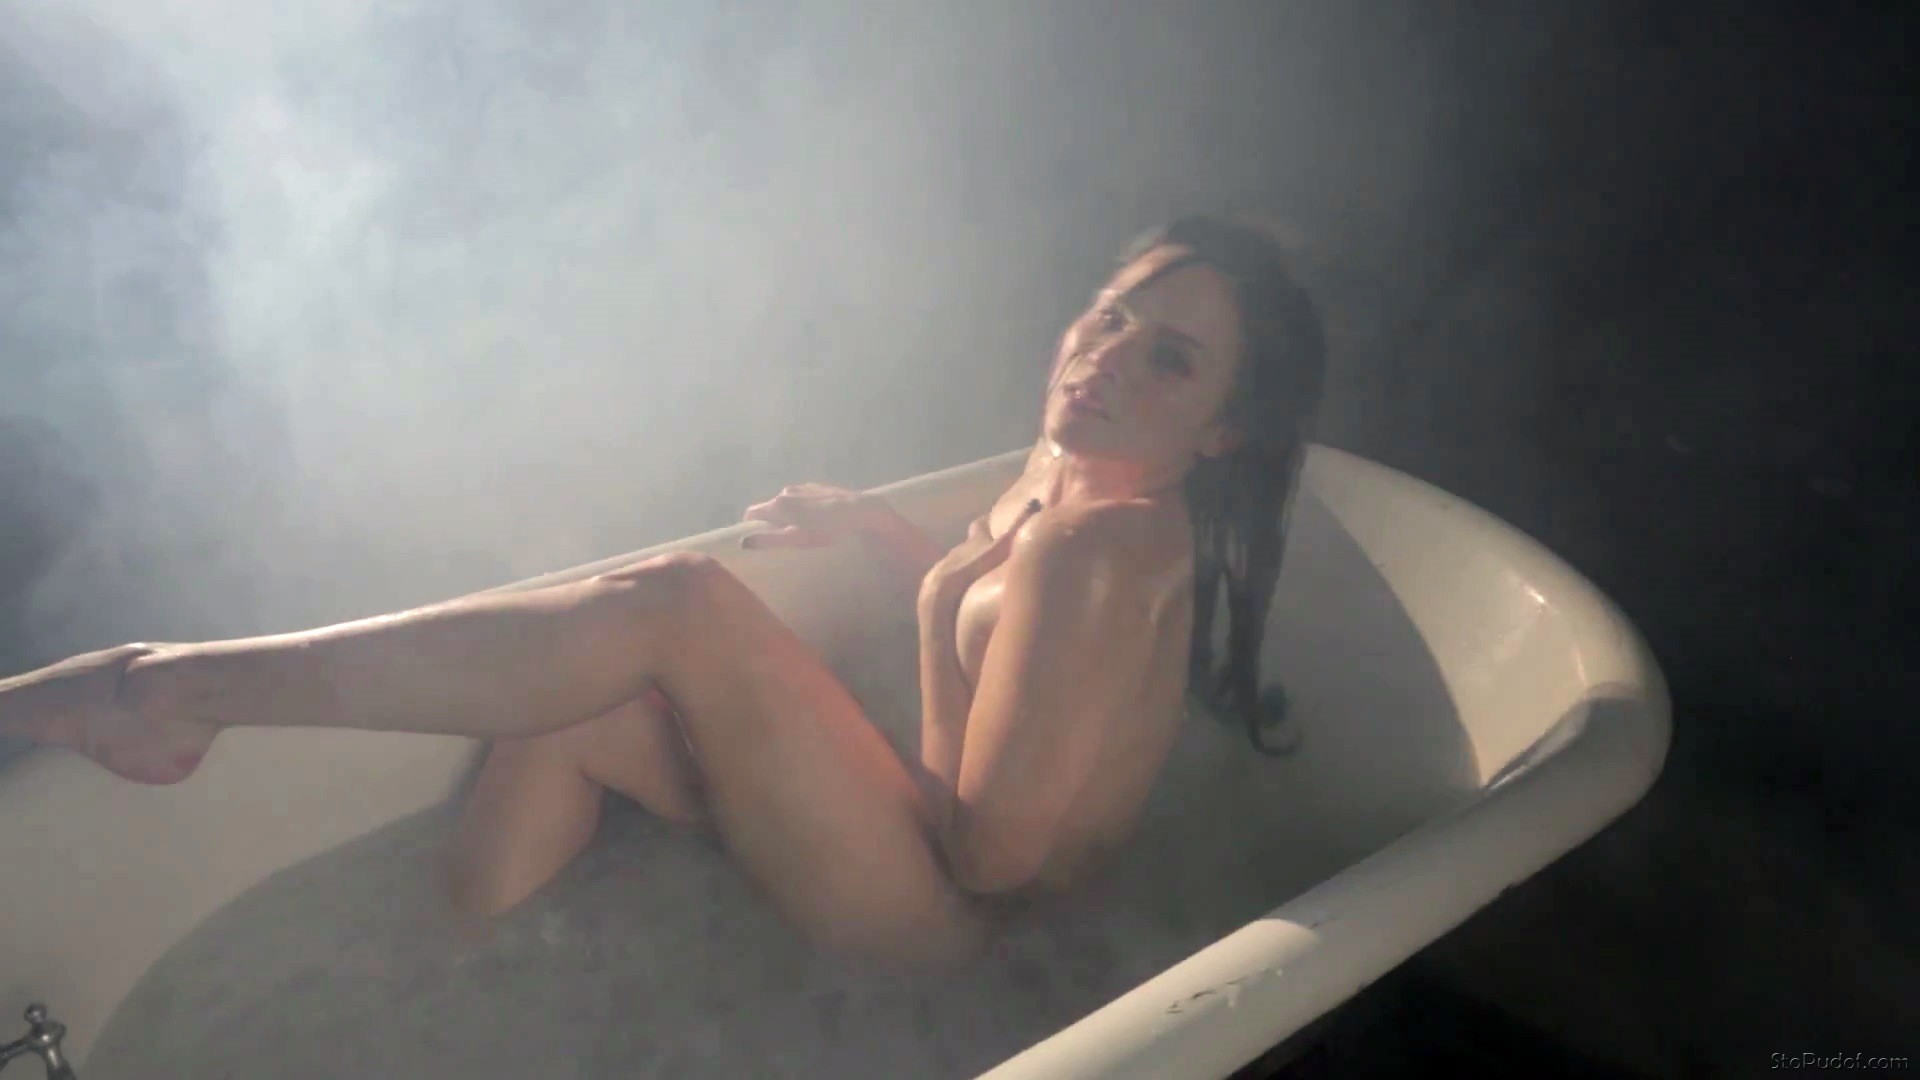 Katrina Law nude photo see - UkPhotoSafari